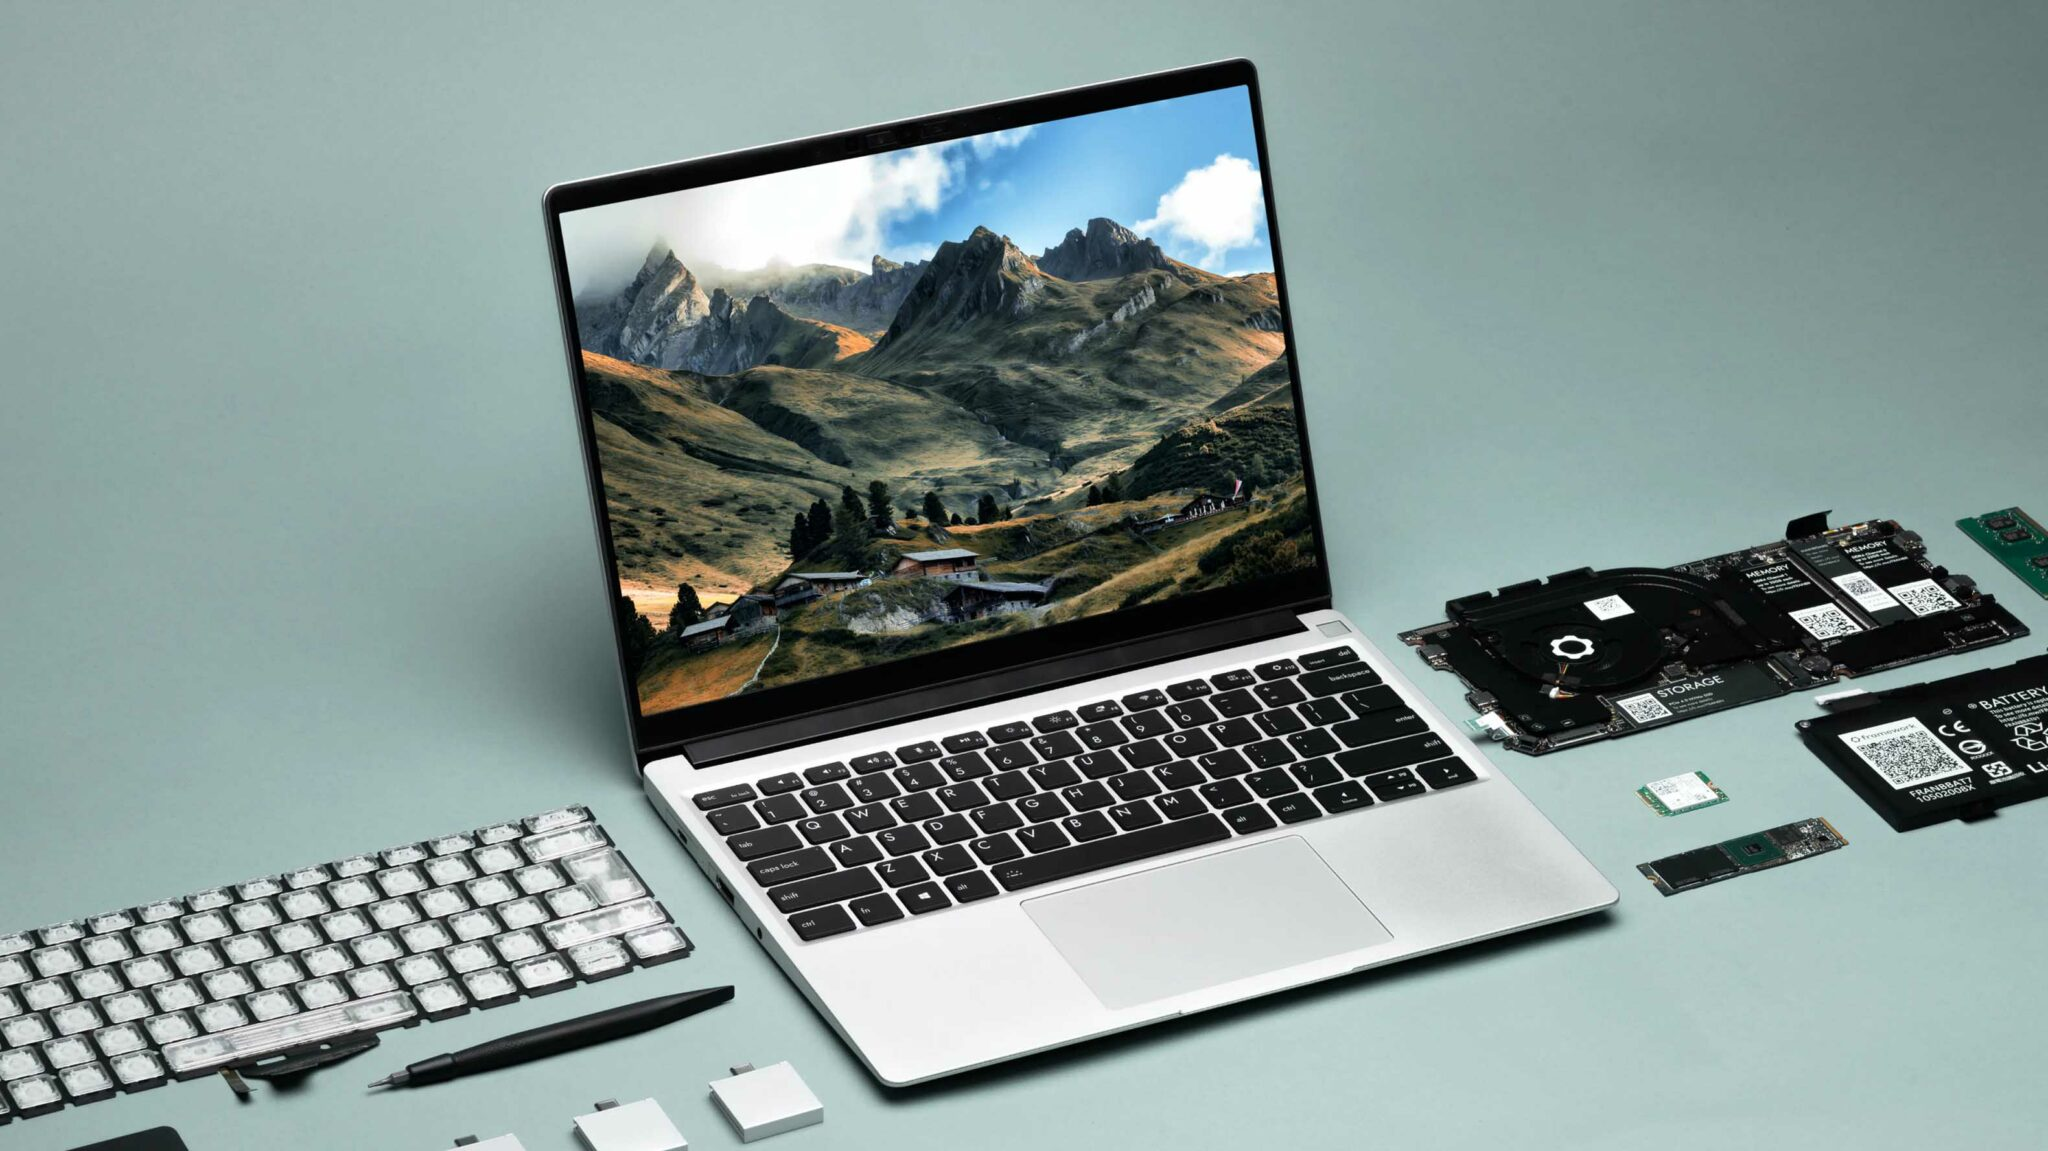 Framework's modular laptop lets you swap the screen, keyboard and ports